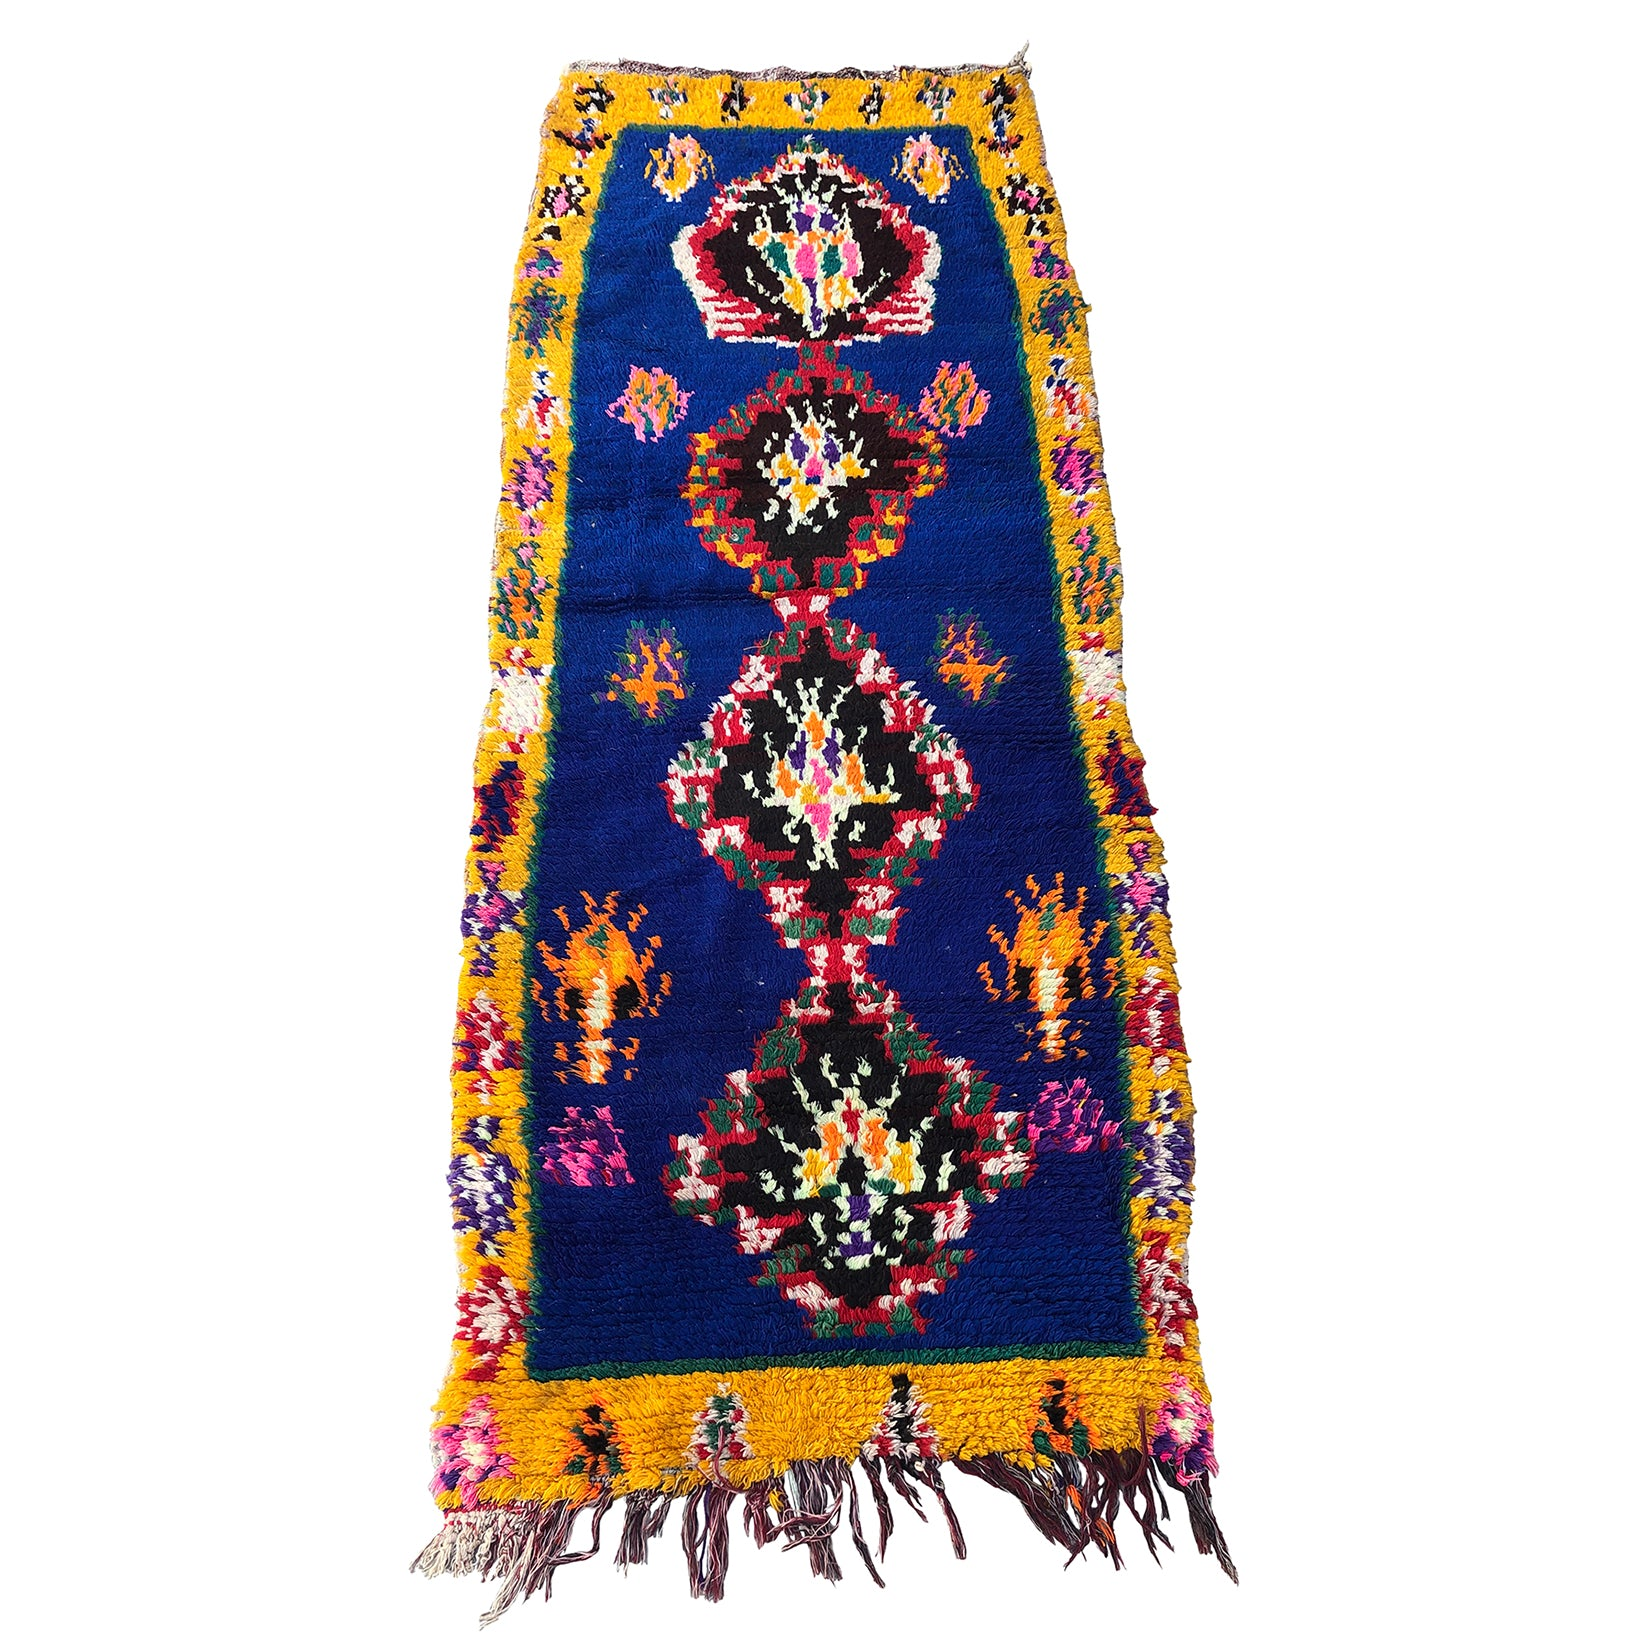 Authentic tribal Moroccan rug